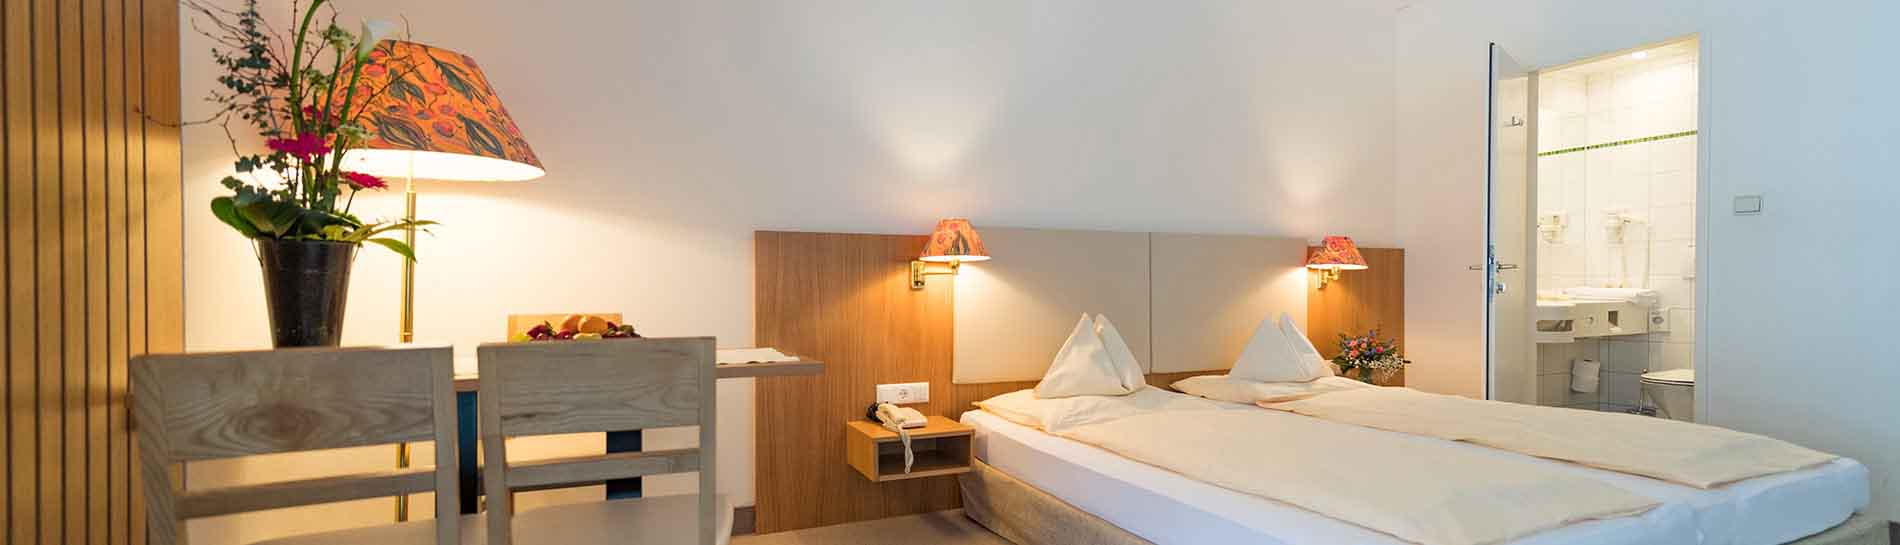 Happy_Stubai_Hotel_Hostel_Neustift_Stubaital_Zimmer